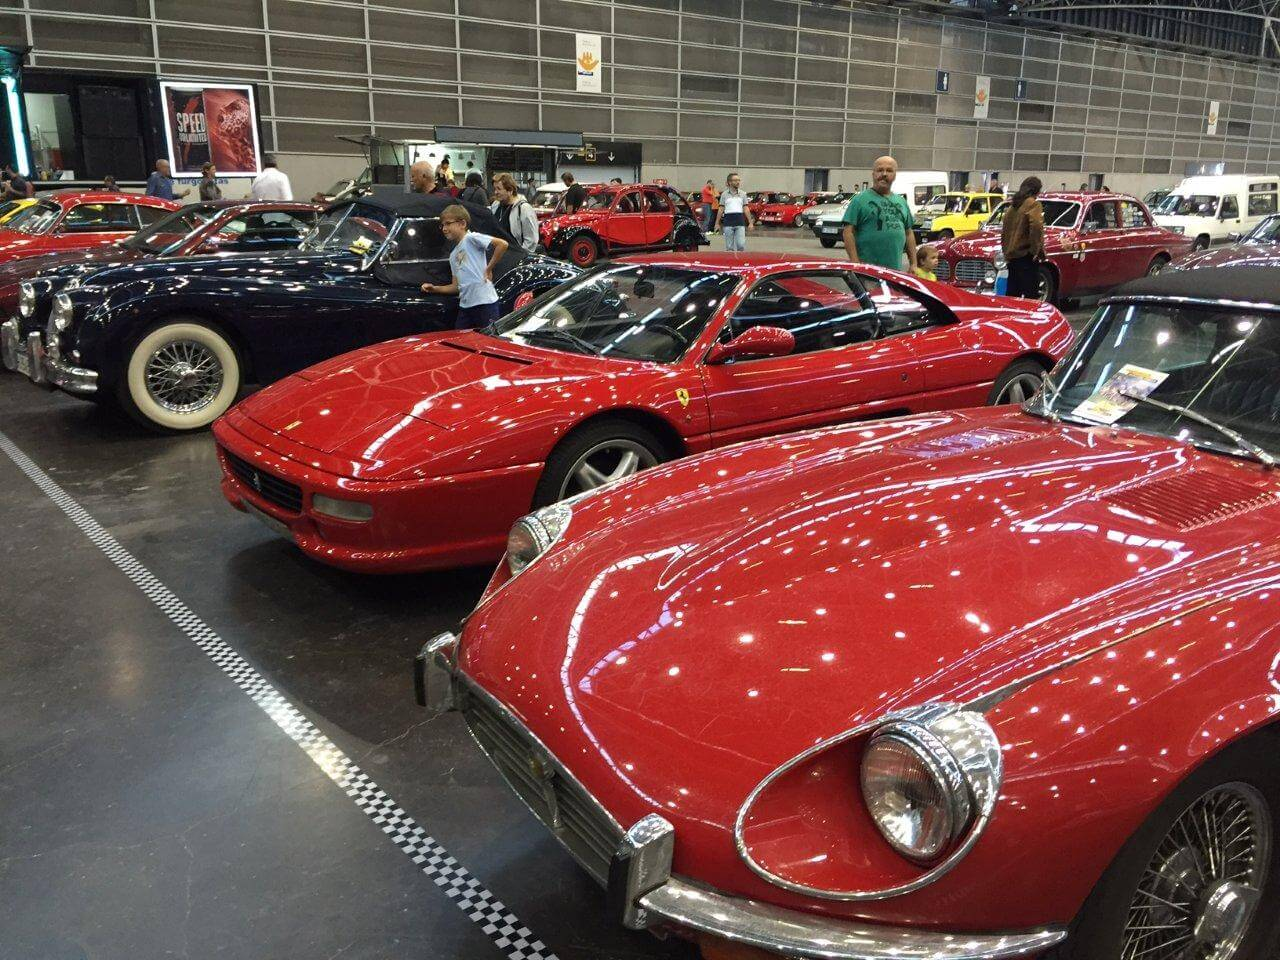 Horario Salon Automovil Barcelona Eventos Iv Retro Valencia Venta Motos Y Coches